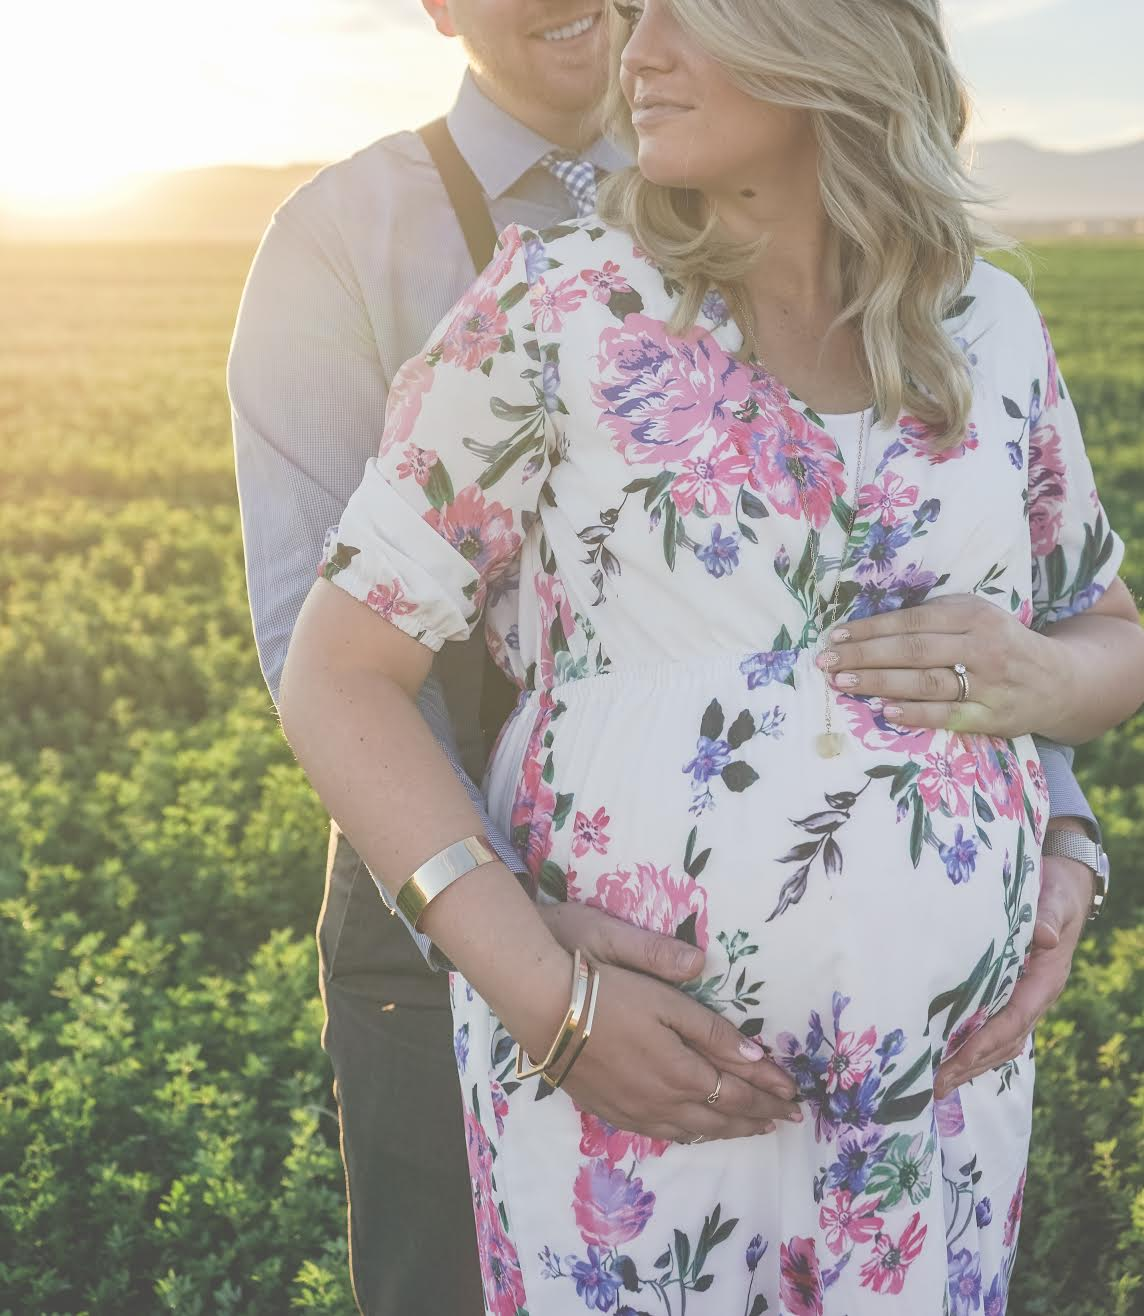 Maternity Photos, Floral Dress, Pregnant Photoshoot